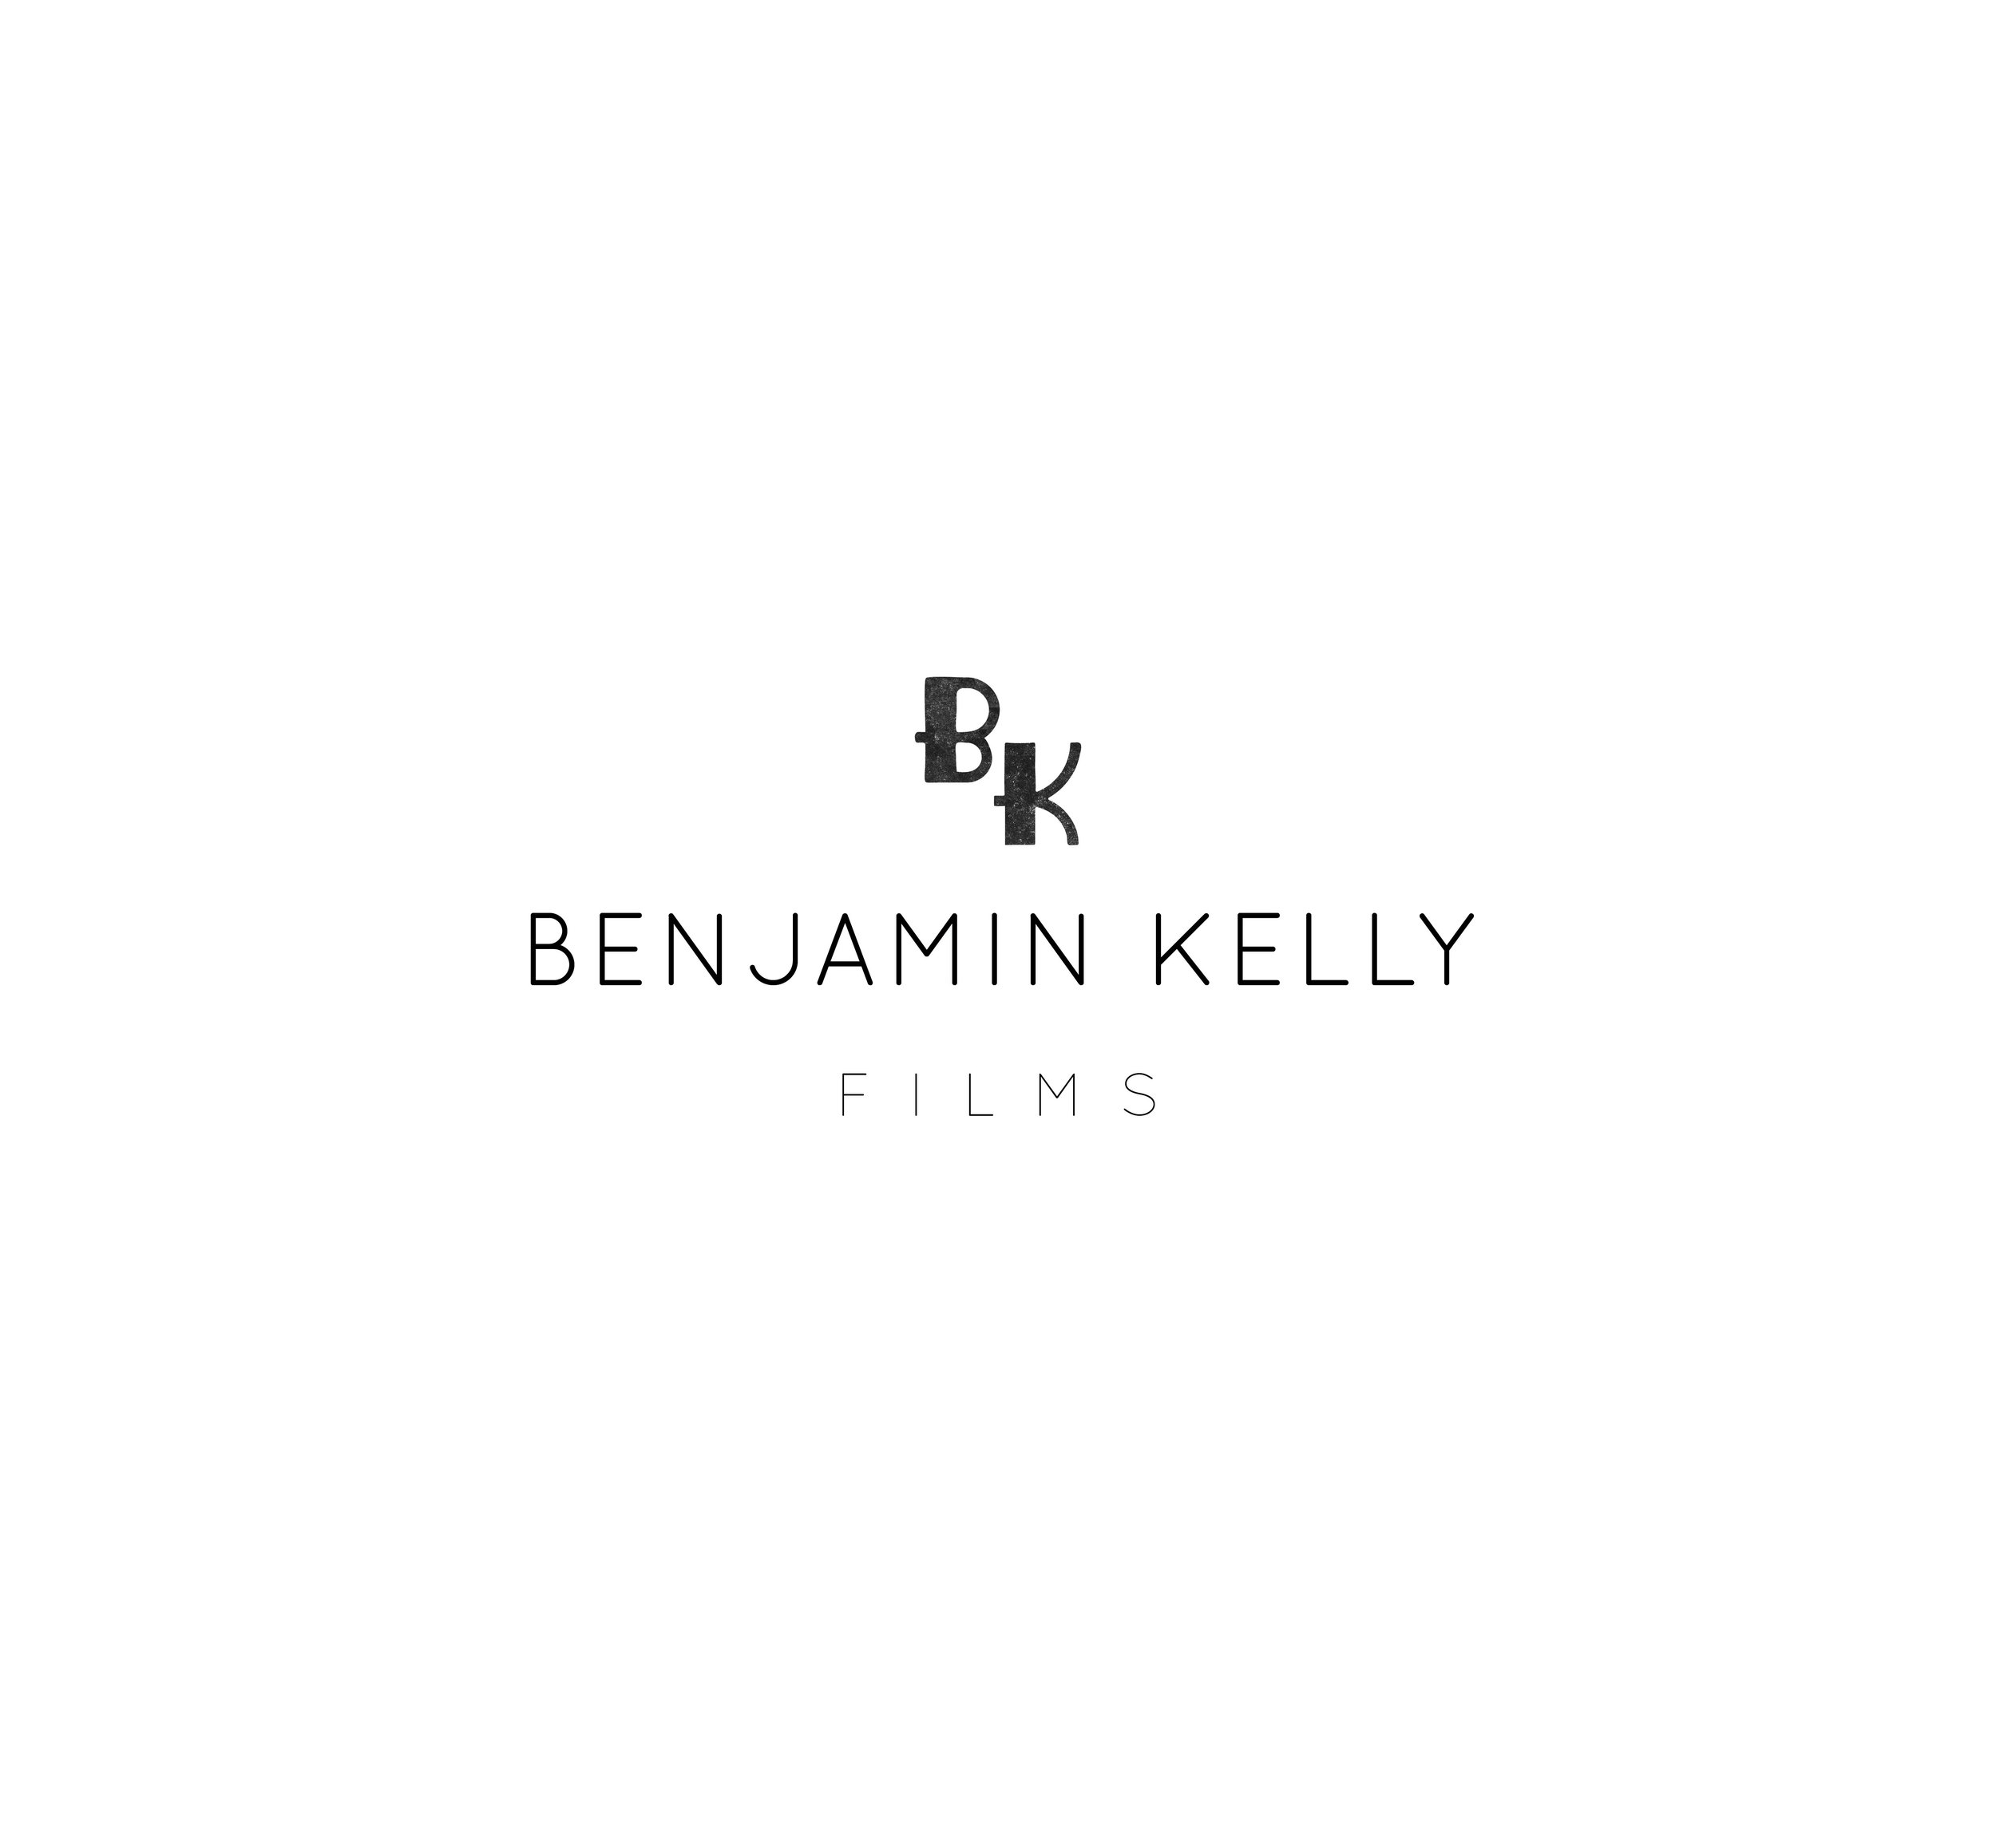 benjamin kelly films_final logo_insta1.jpg